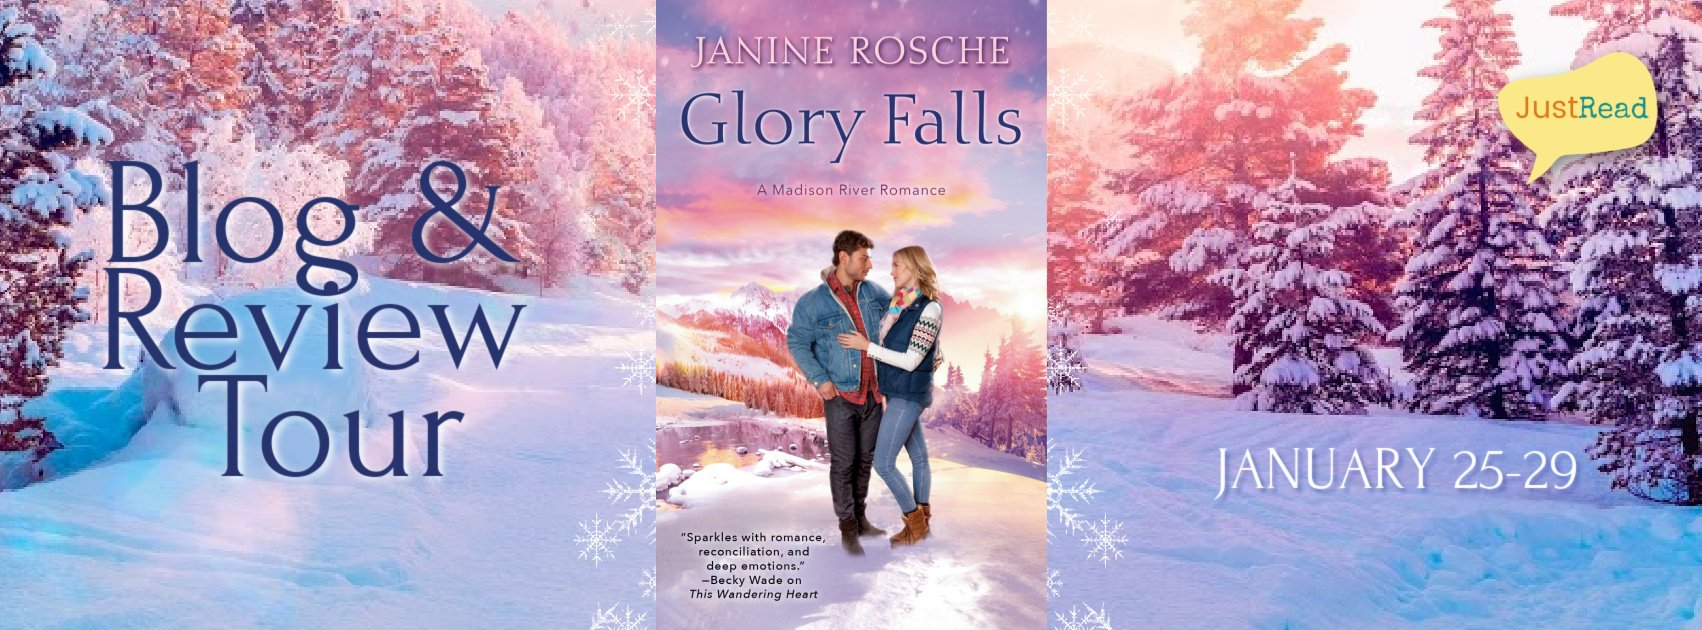 Glory Falls JustRead Blog + Review Tour